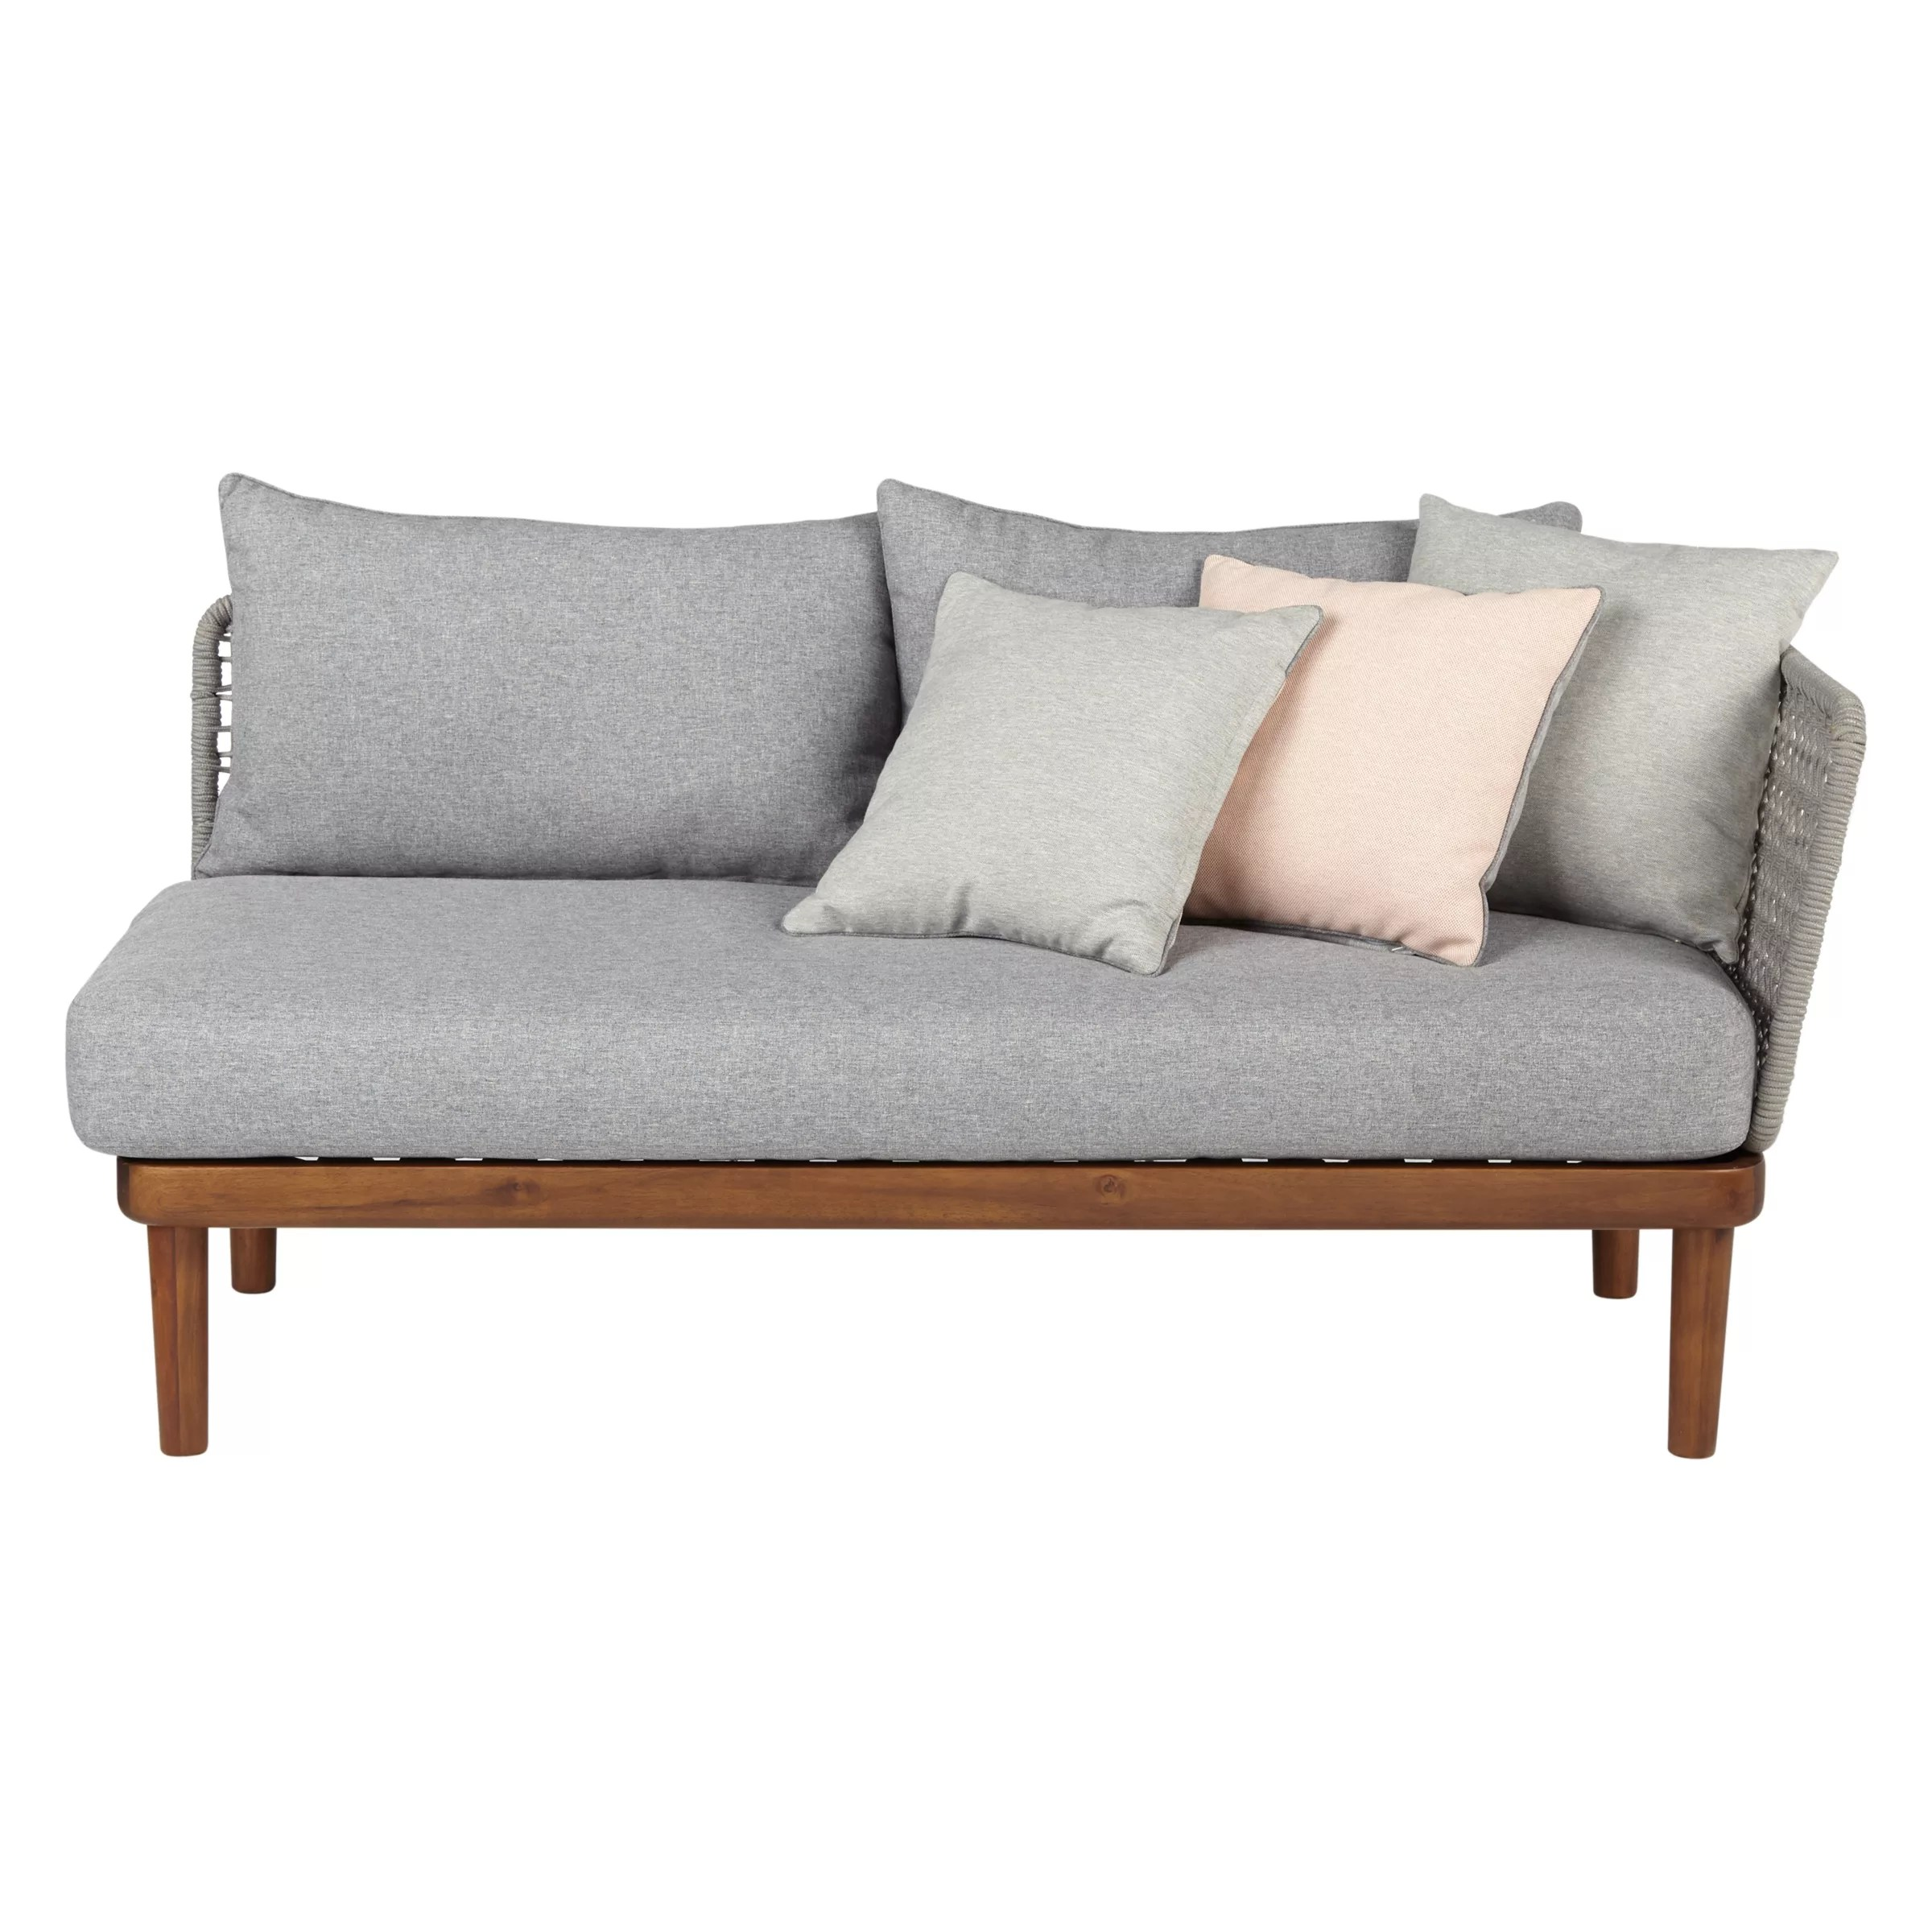 Settee No Arms Design Project By John Lewis No 096 Lounging One Arm Sofa Fsc